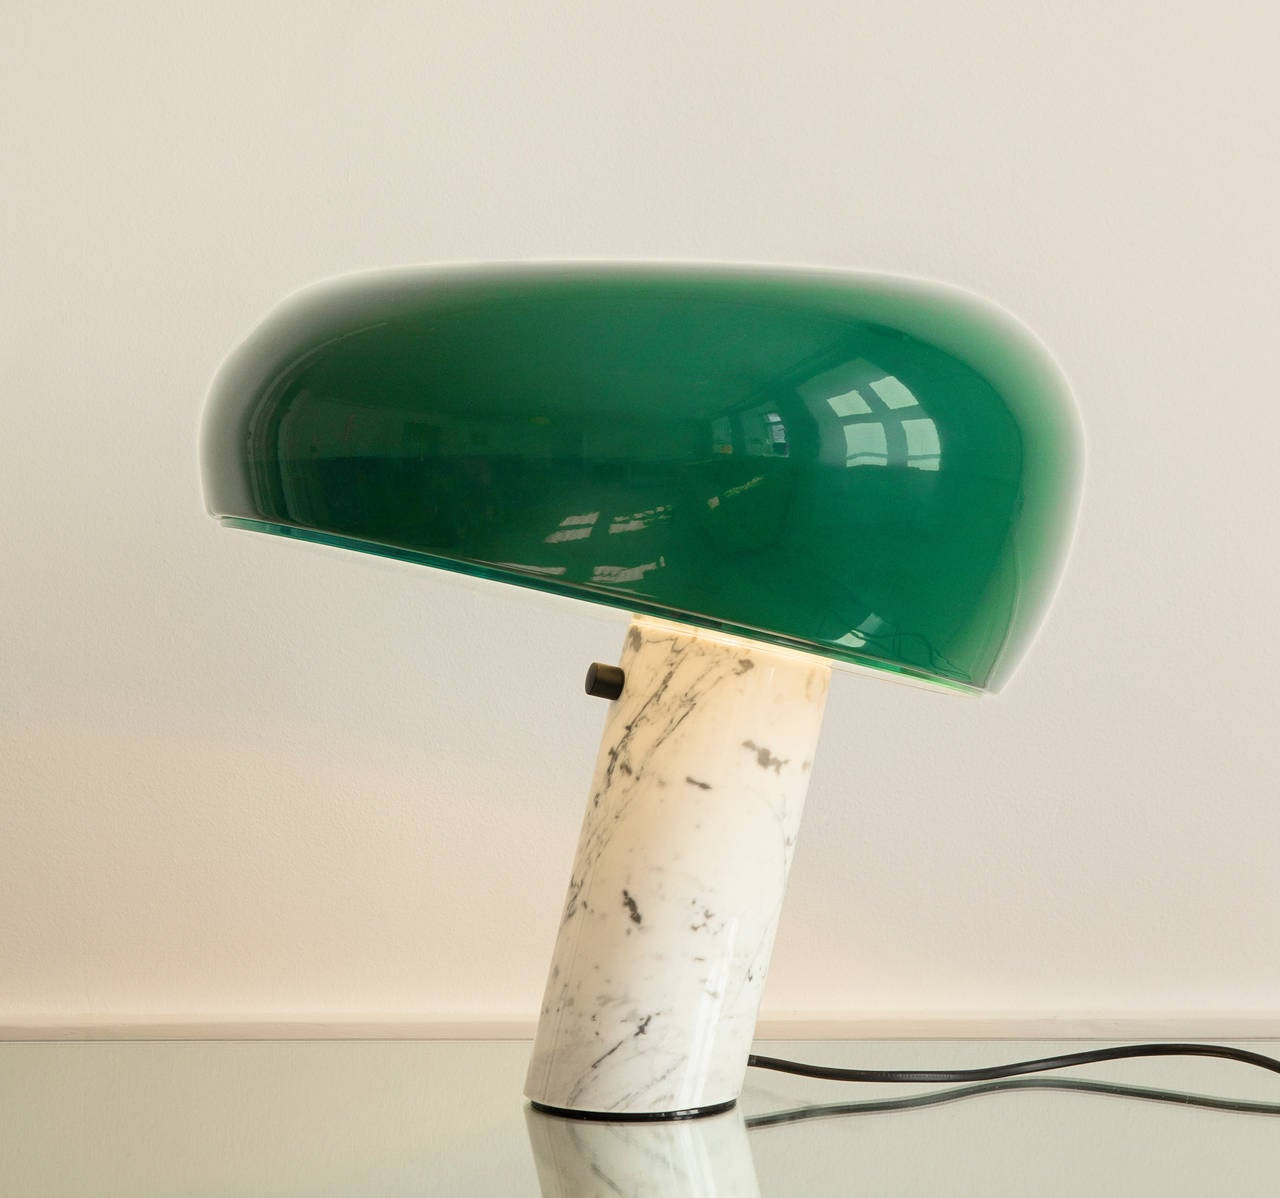 achille pier giacomo castiglioni snoopy table lamp at 1stdibs. Black Bedroom Furniture Sets. Home Design Ideas